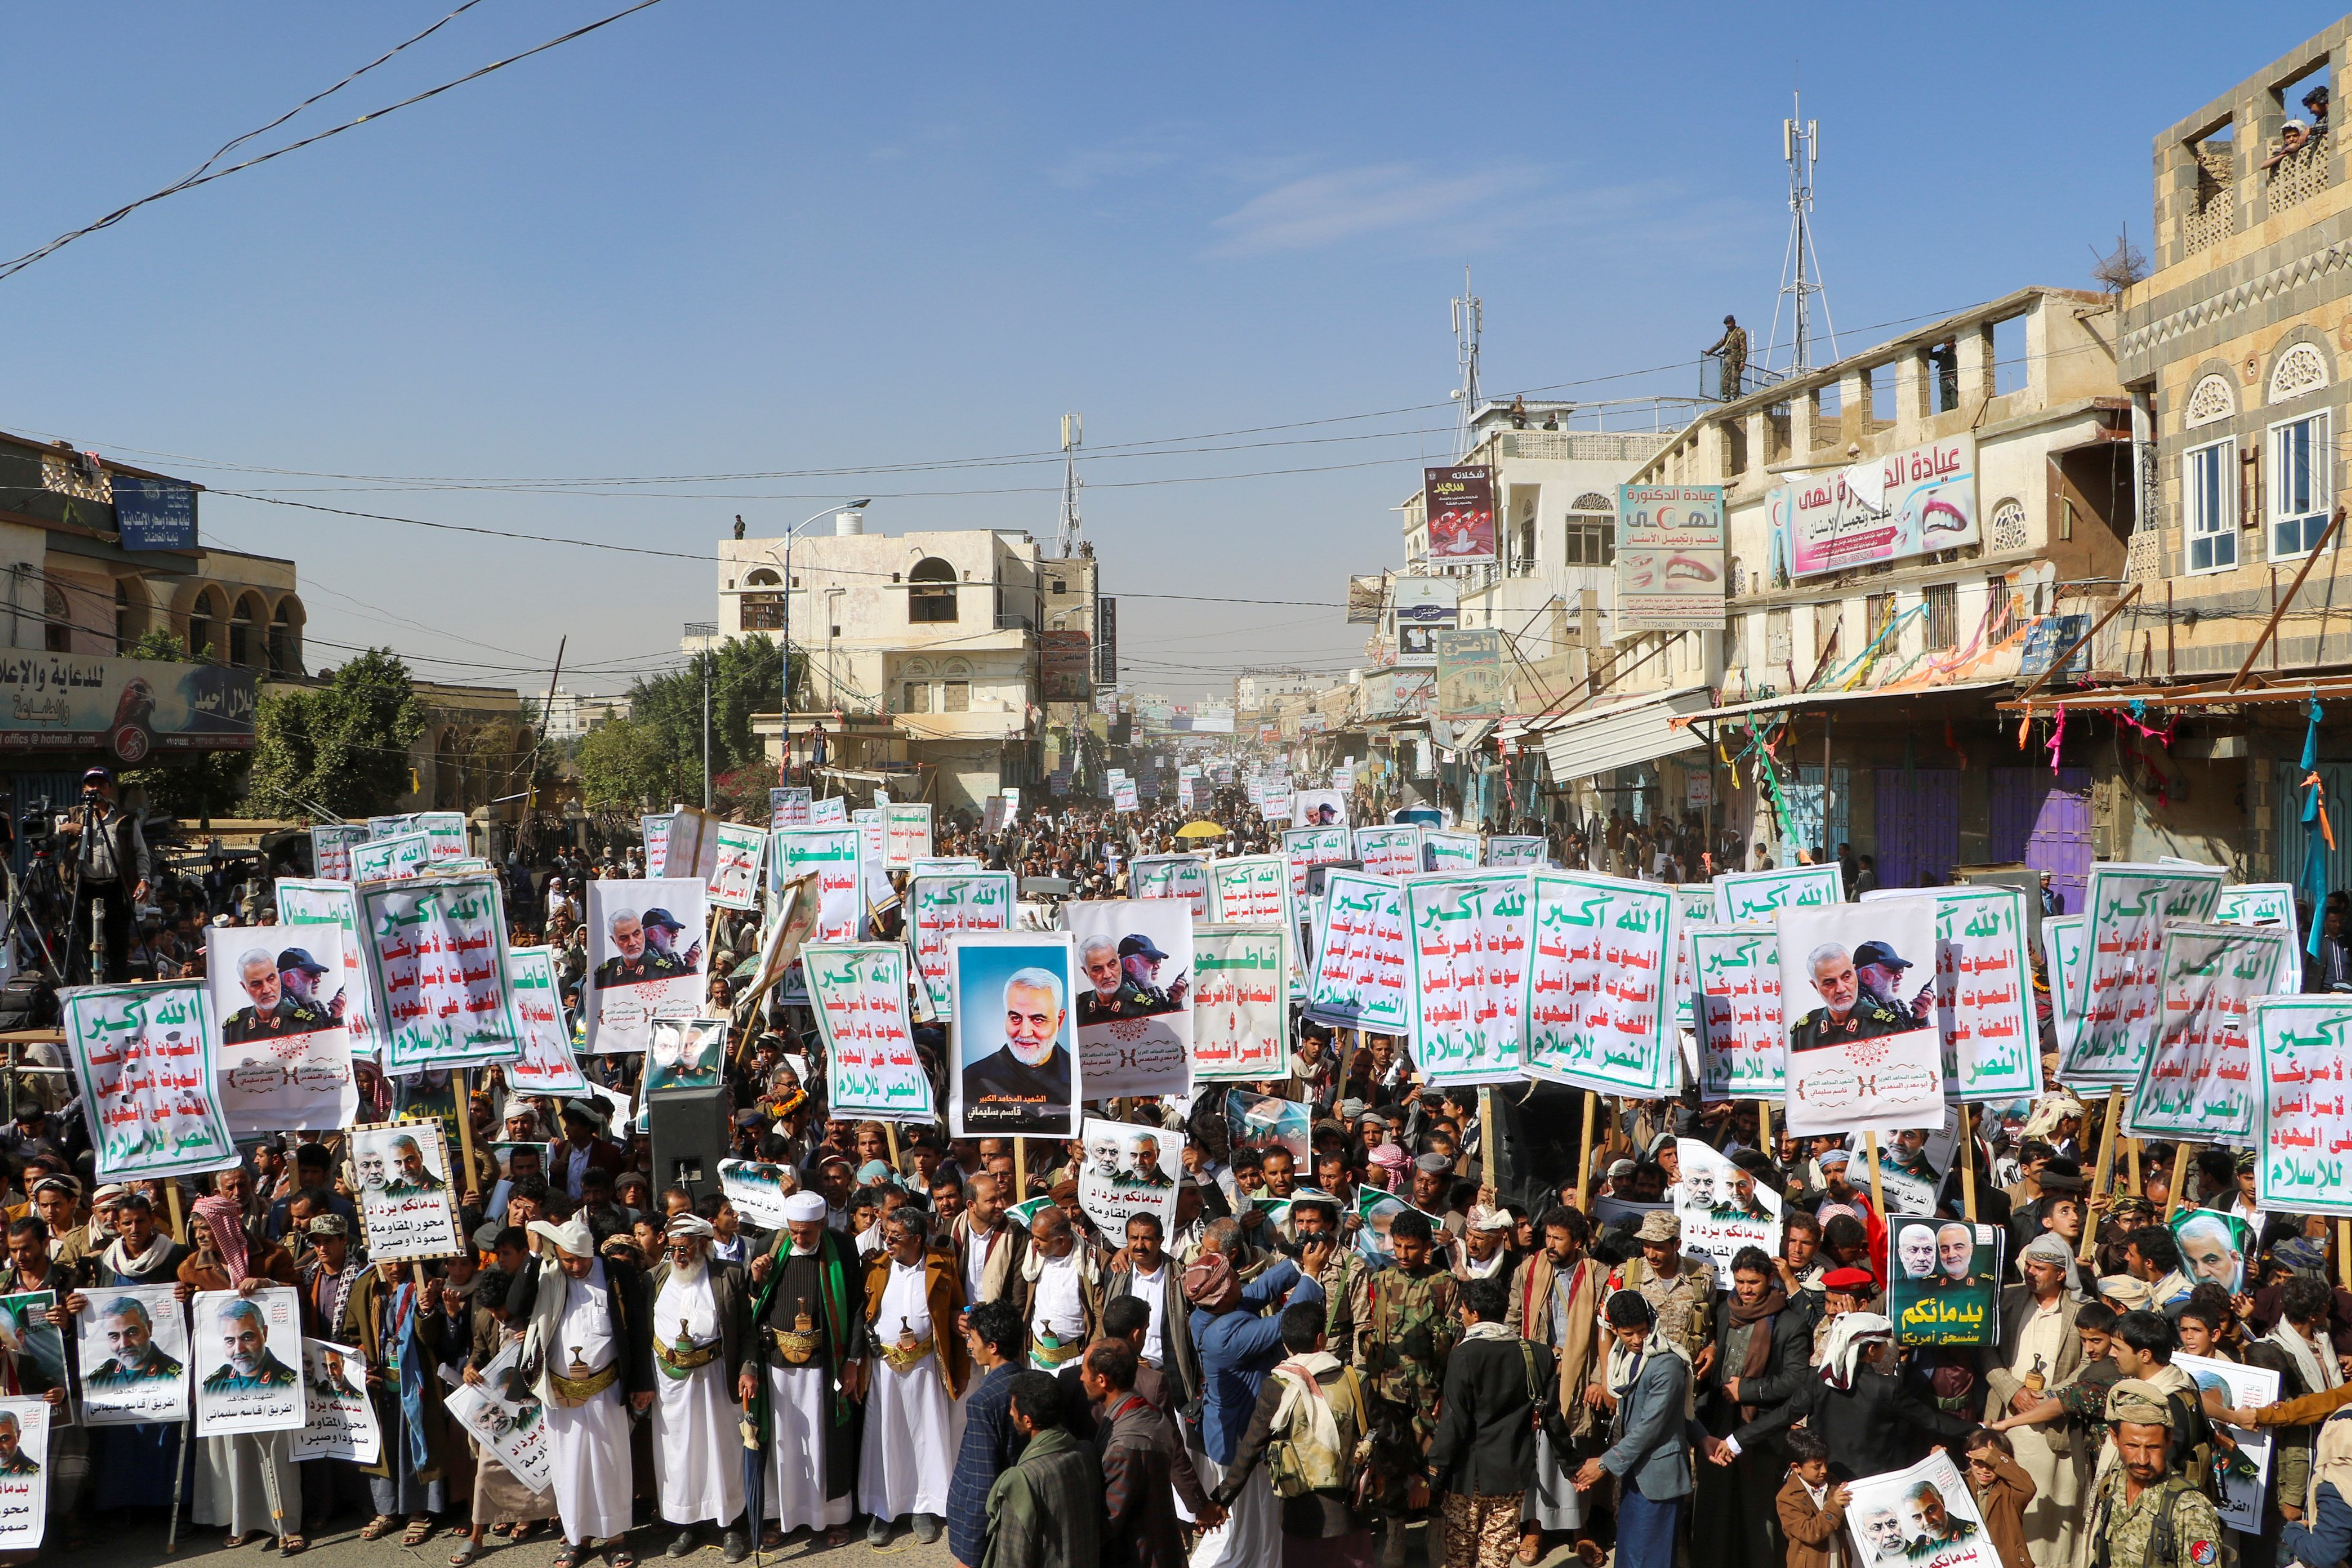 "Supporters of the Houthis rally to denounce the U.S. killing of Iranian Major-General Qassem Soleimani, head of the elite Quds Force, and Iraqi militia commander Abu Mahdi al-Mutha dis, in Saada, Yemen Jan. 6, 2020. The placards read: ""God is the Greatest, Death to America, Death to Israel, Curse on the Jews, Victory to Islam."" REUTERS/Naif Rahma"